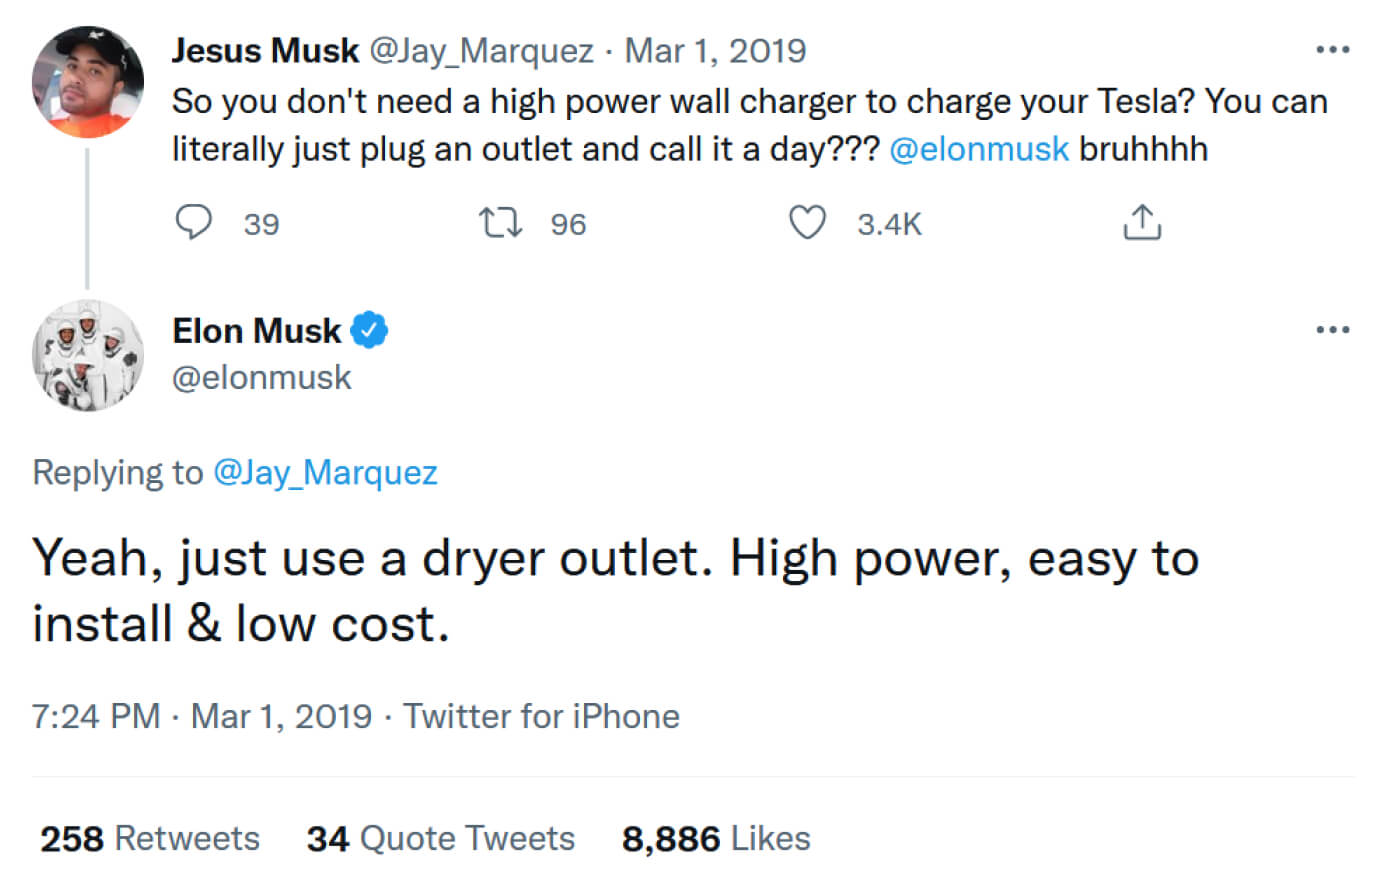 """Tweet to Elon Musk saying """"so you don't need a high power wall charger to charge your Tesla? You can literally just plug an outlet and call it a day?"""" and Elon Musk replying """"Yeah, just use a dryer outlet. High power, easy to install & low cost."""""""